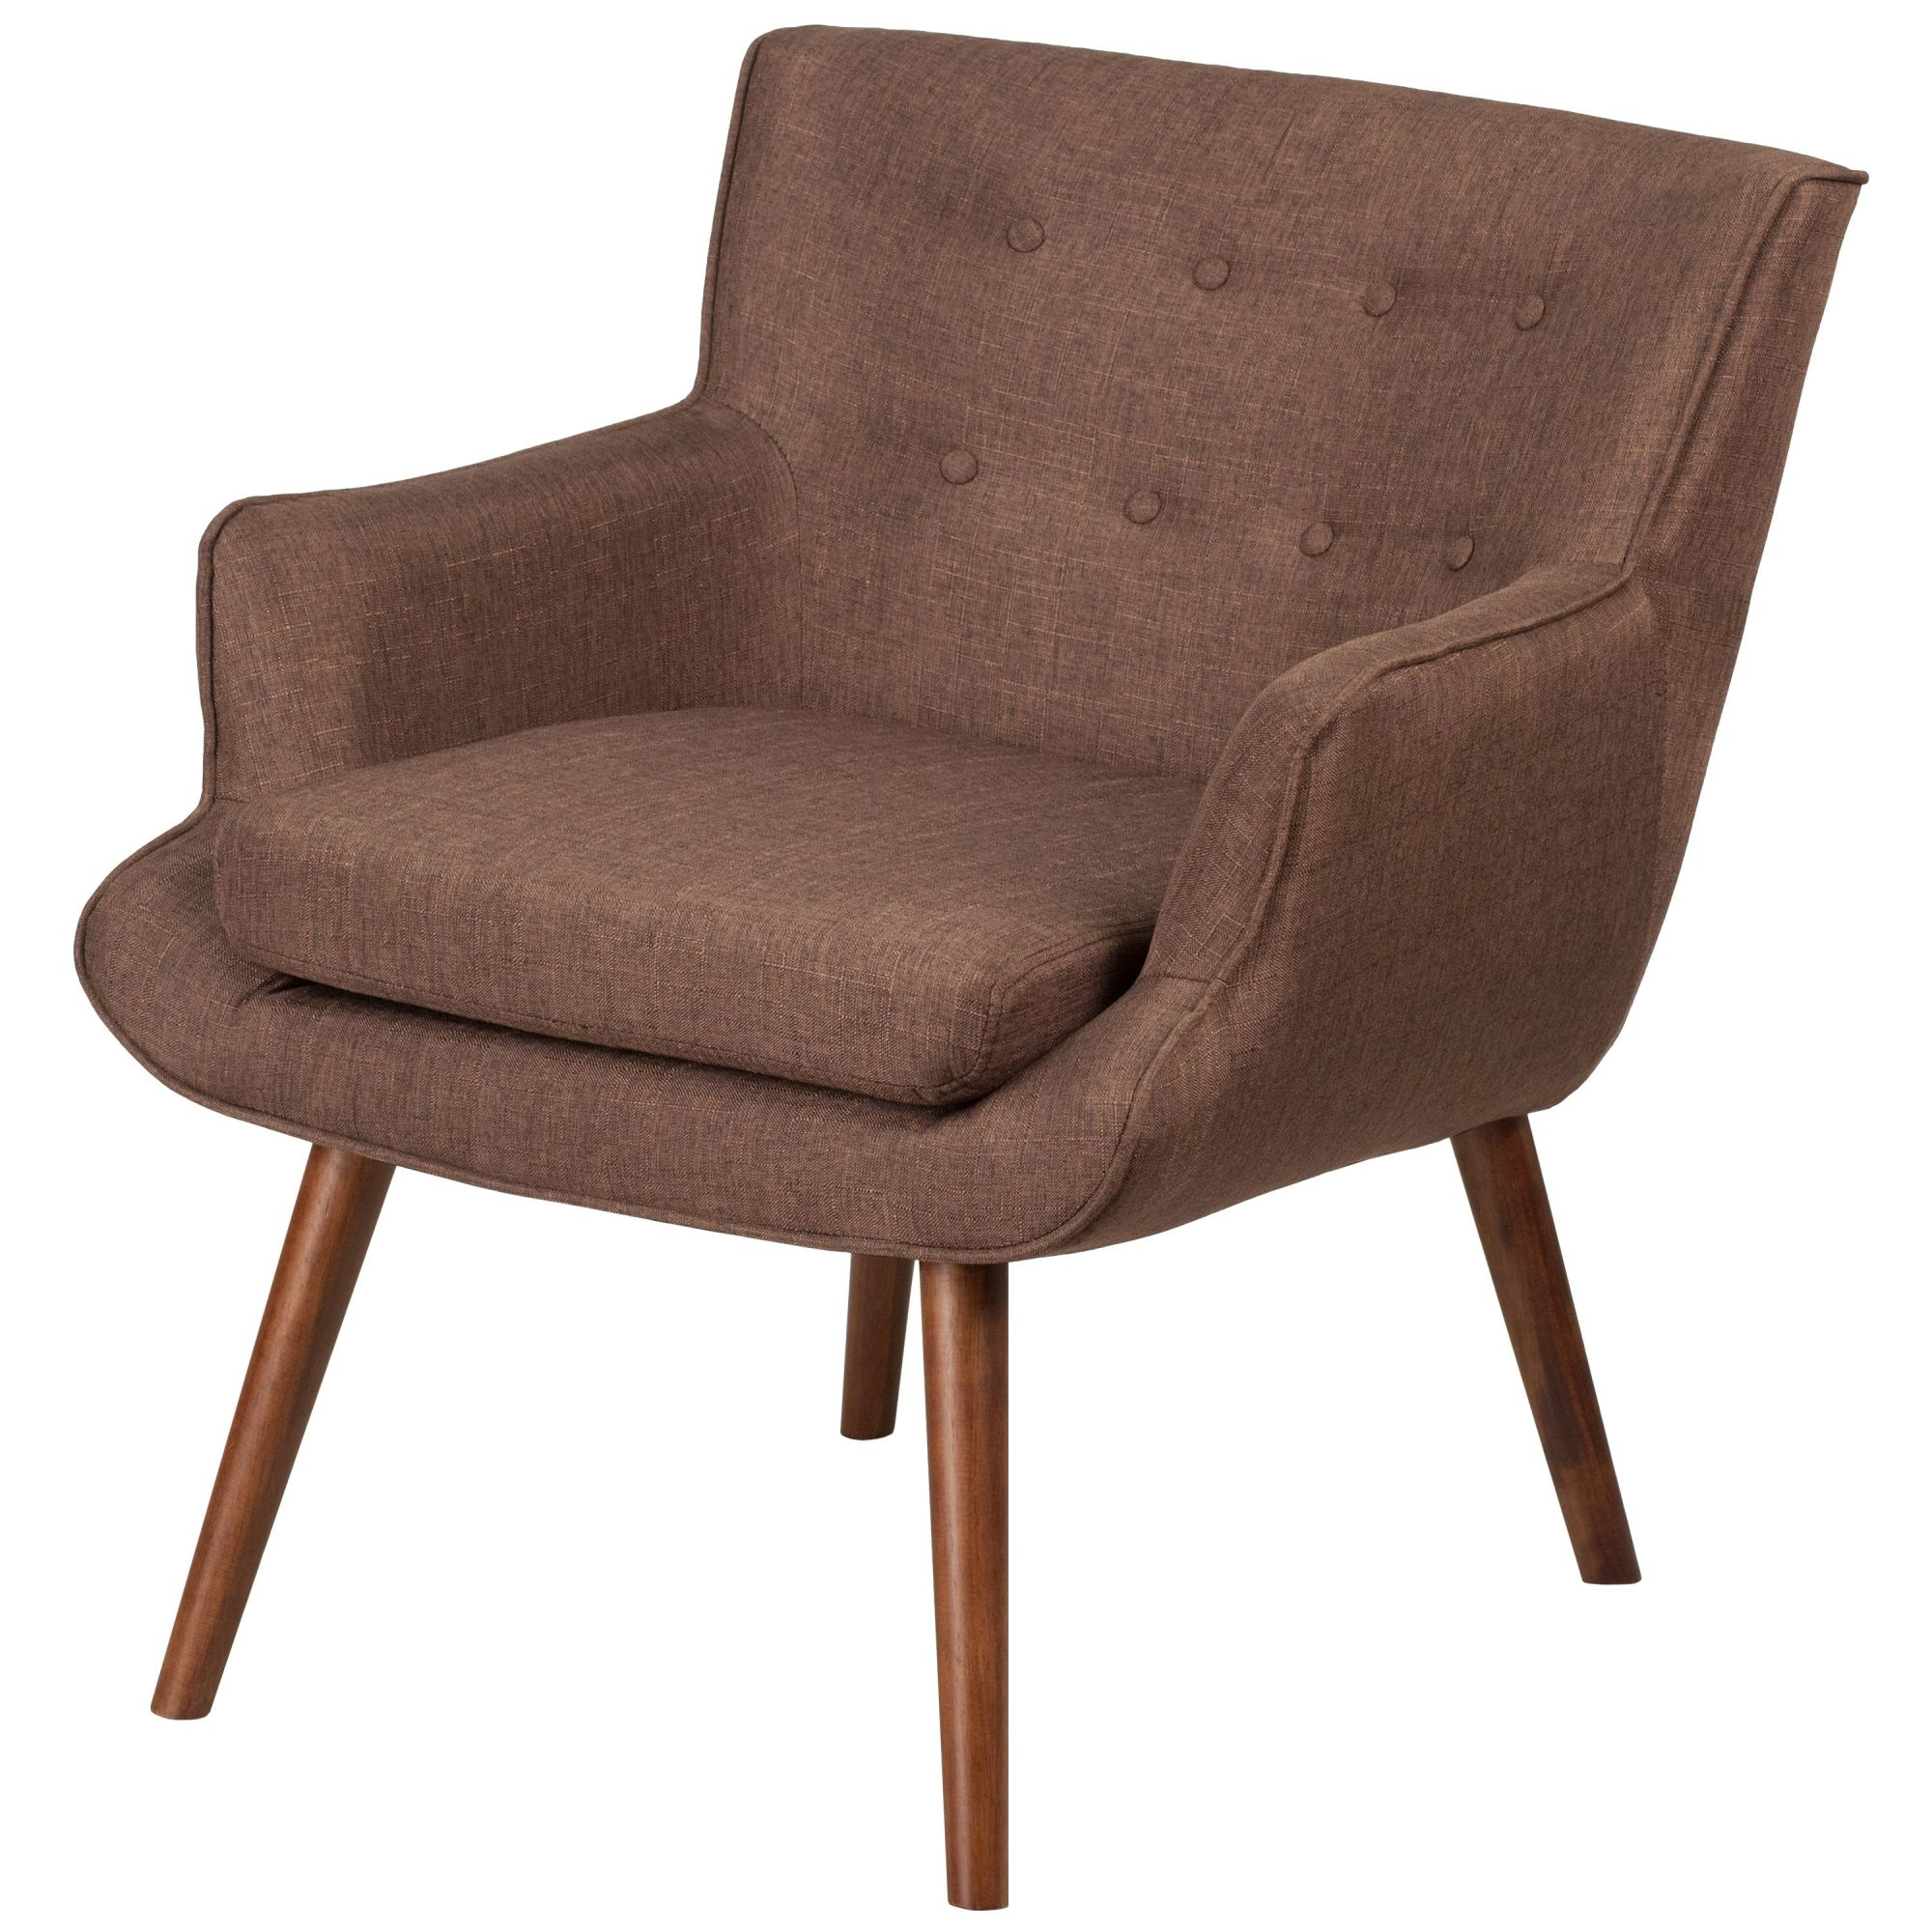 Groovy Details About Delacora Ff Qy B84 28 25 Wide Fabric Accent Chair Brown Gmtry Best Dining Table And Chair Ideas Images Gmtryco